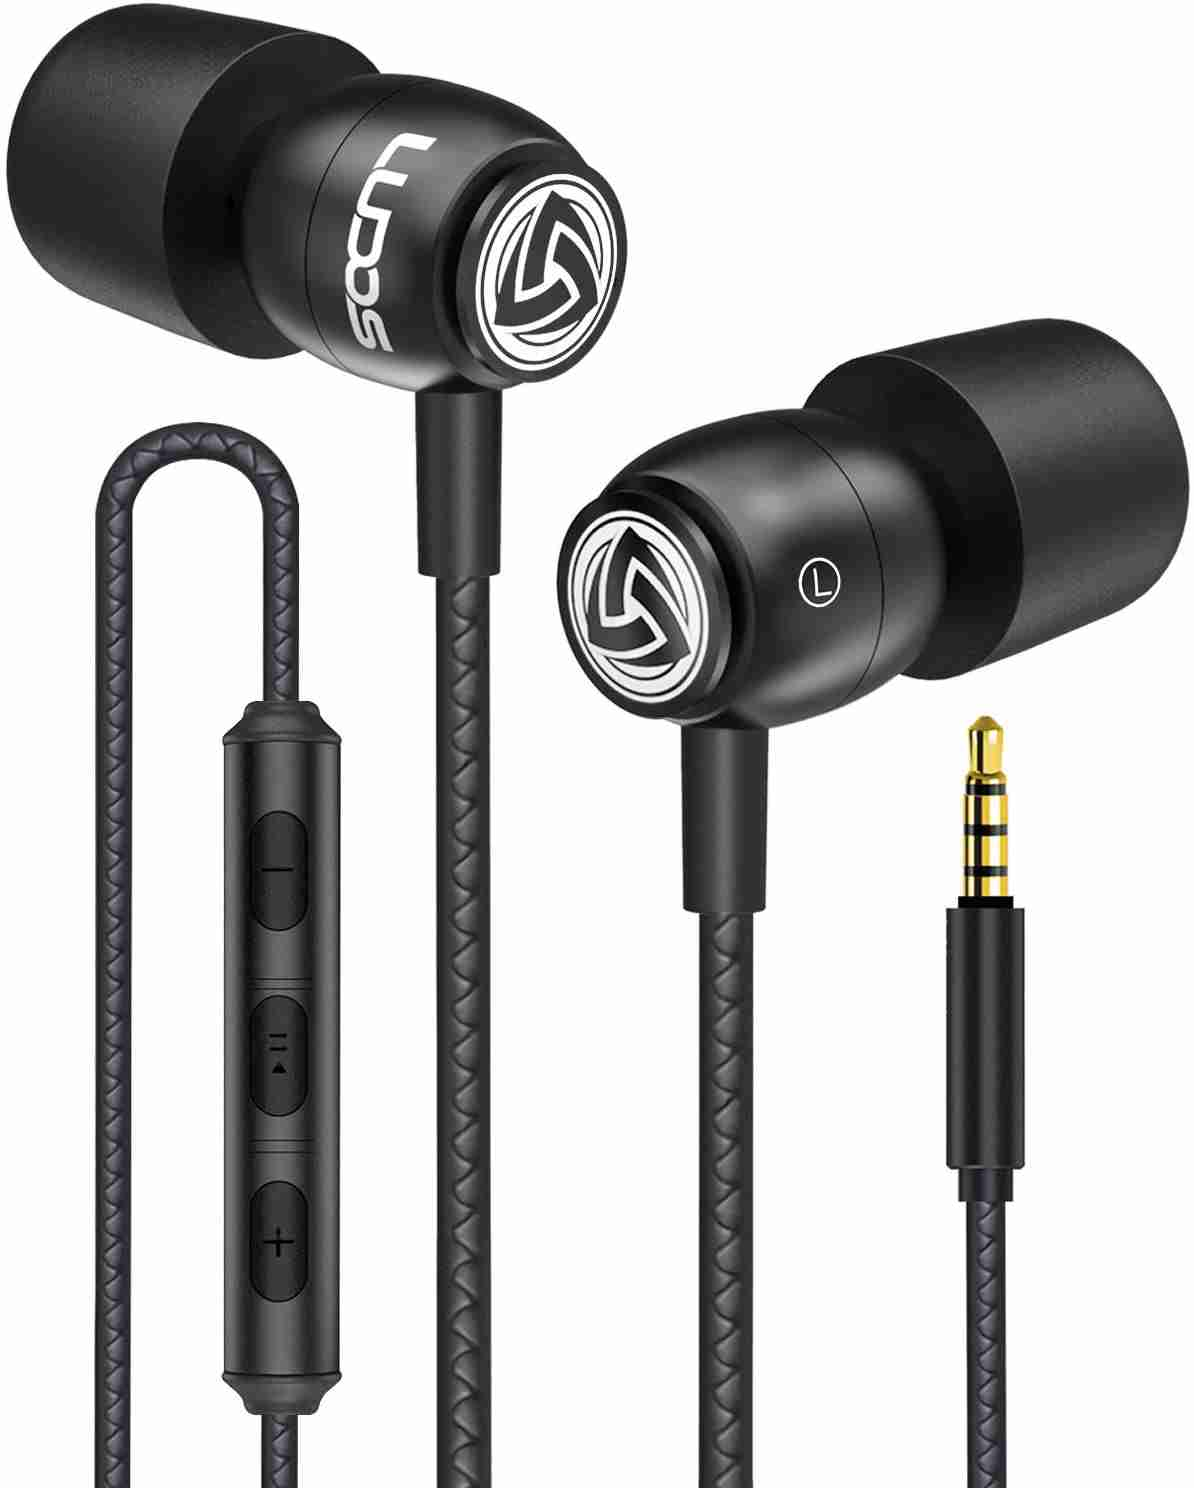 LUDOS CLAMOR Auricolari In-Ear